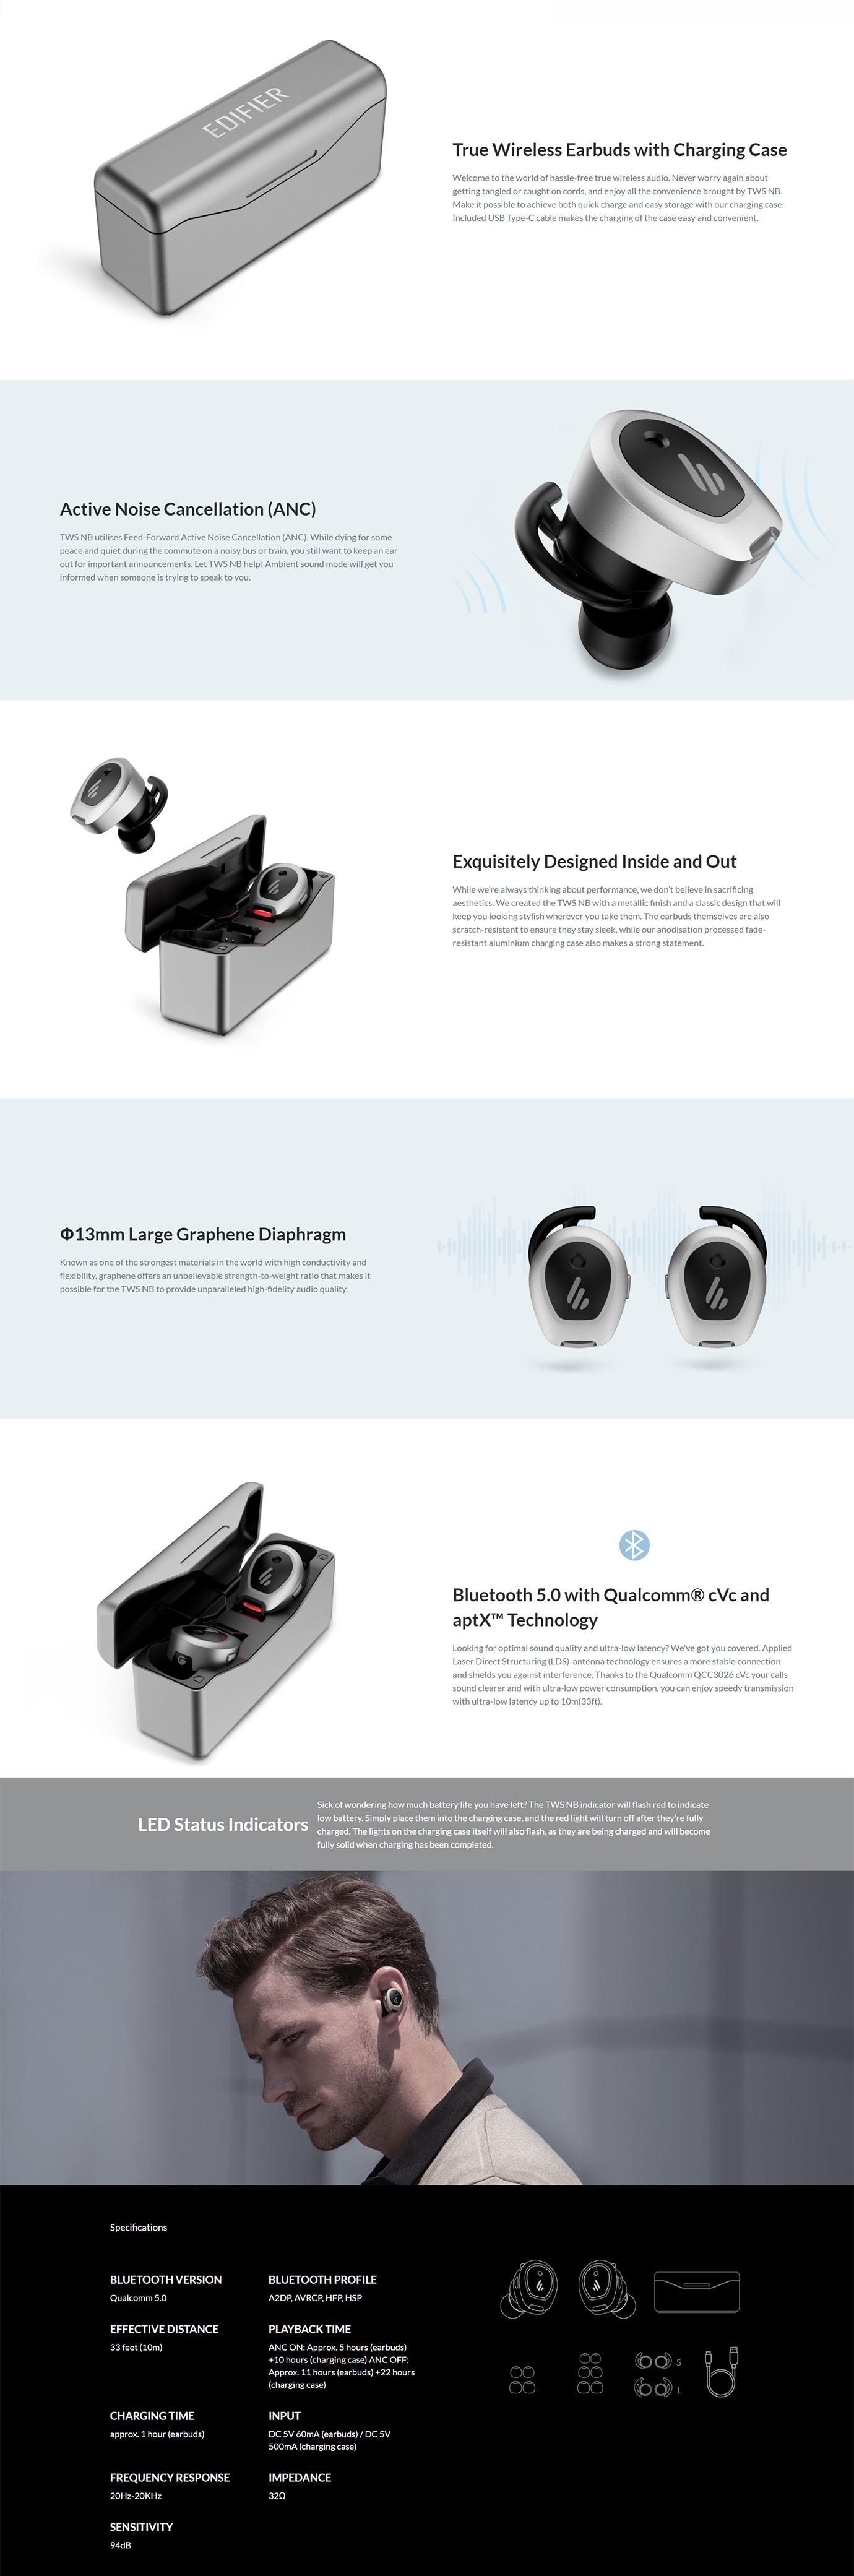 Edifier TWS NB True Wireless Earbuds with Active Noise Cancellation